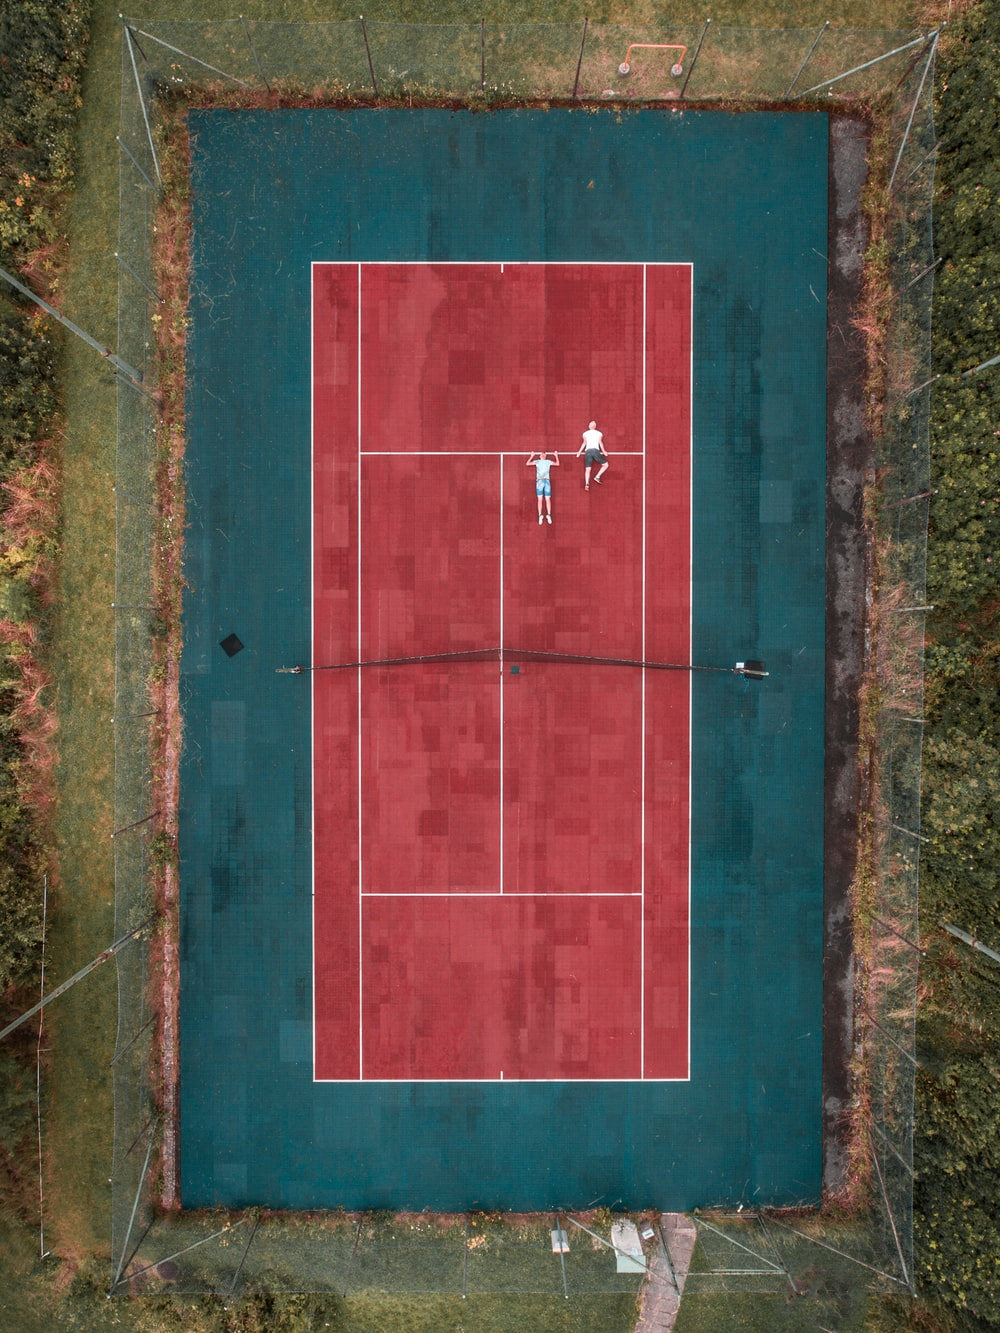 two person lying on tennis court